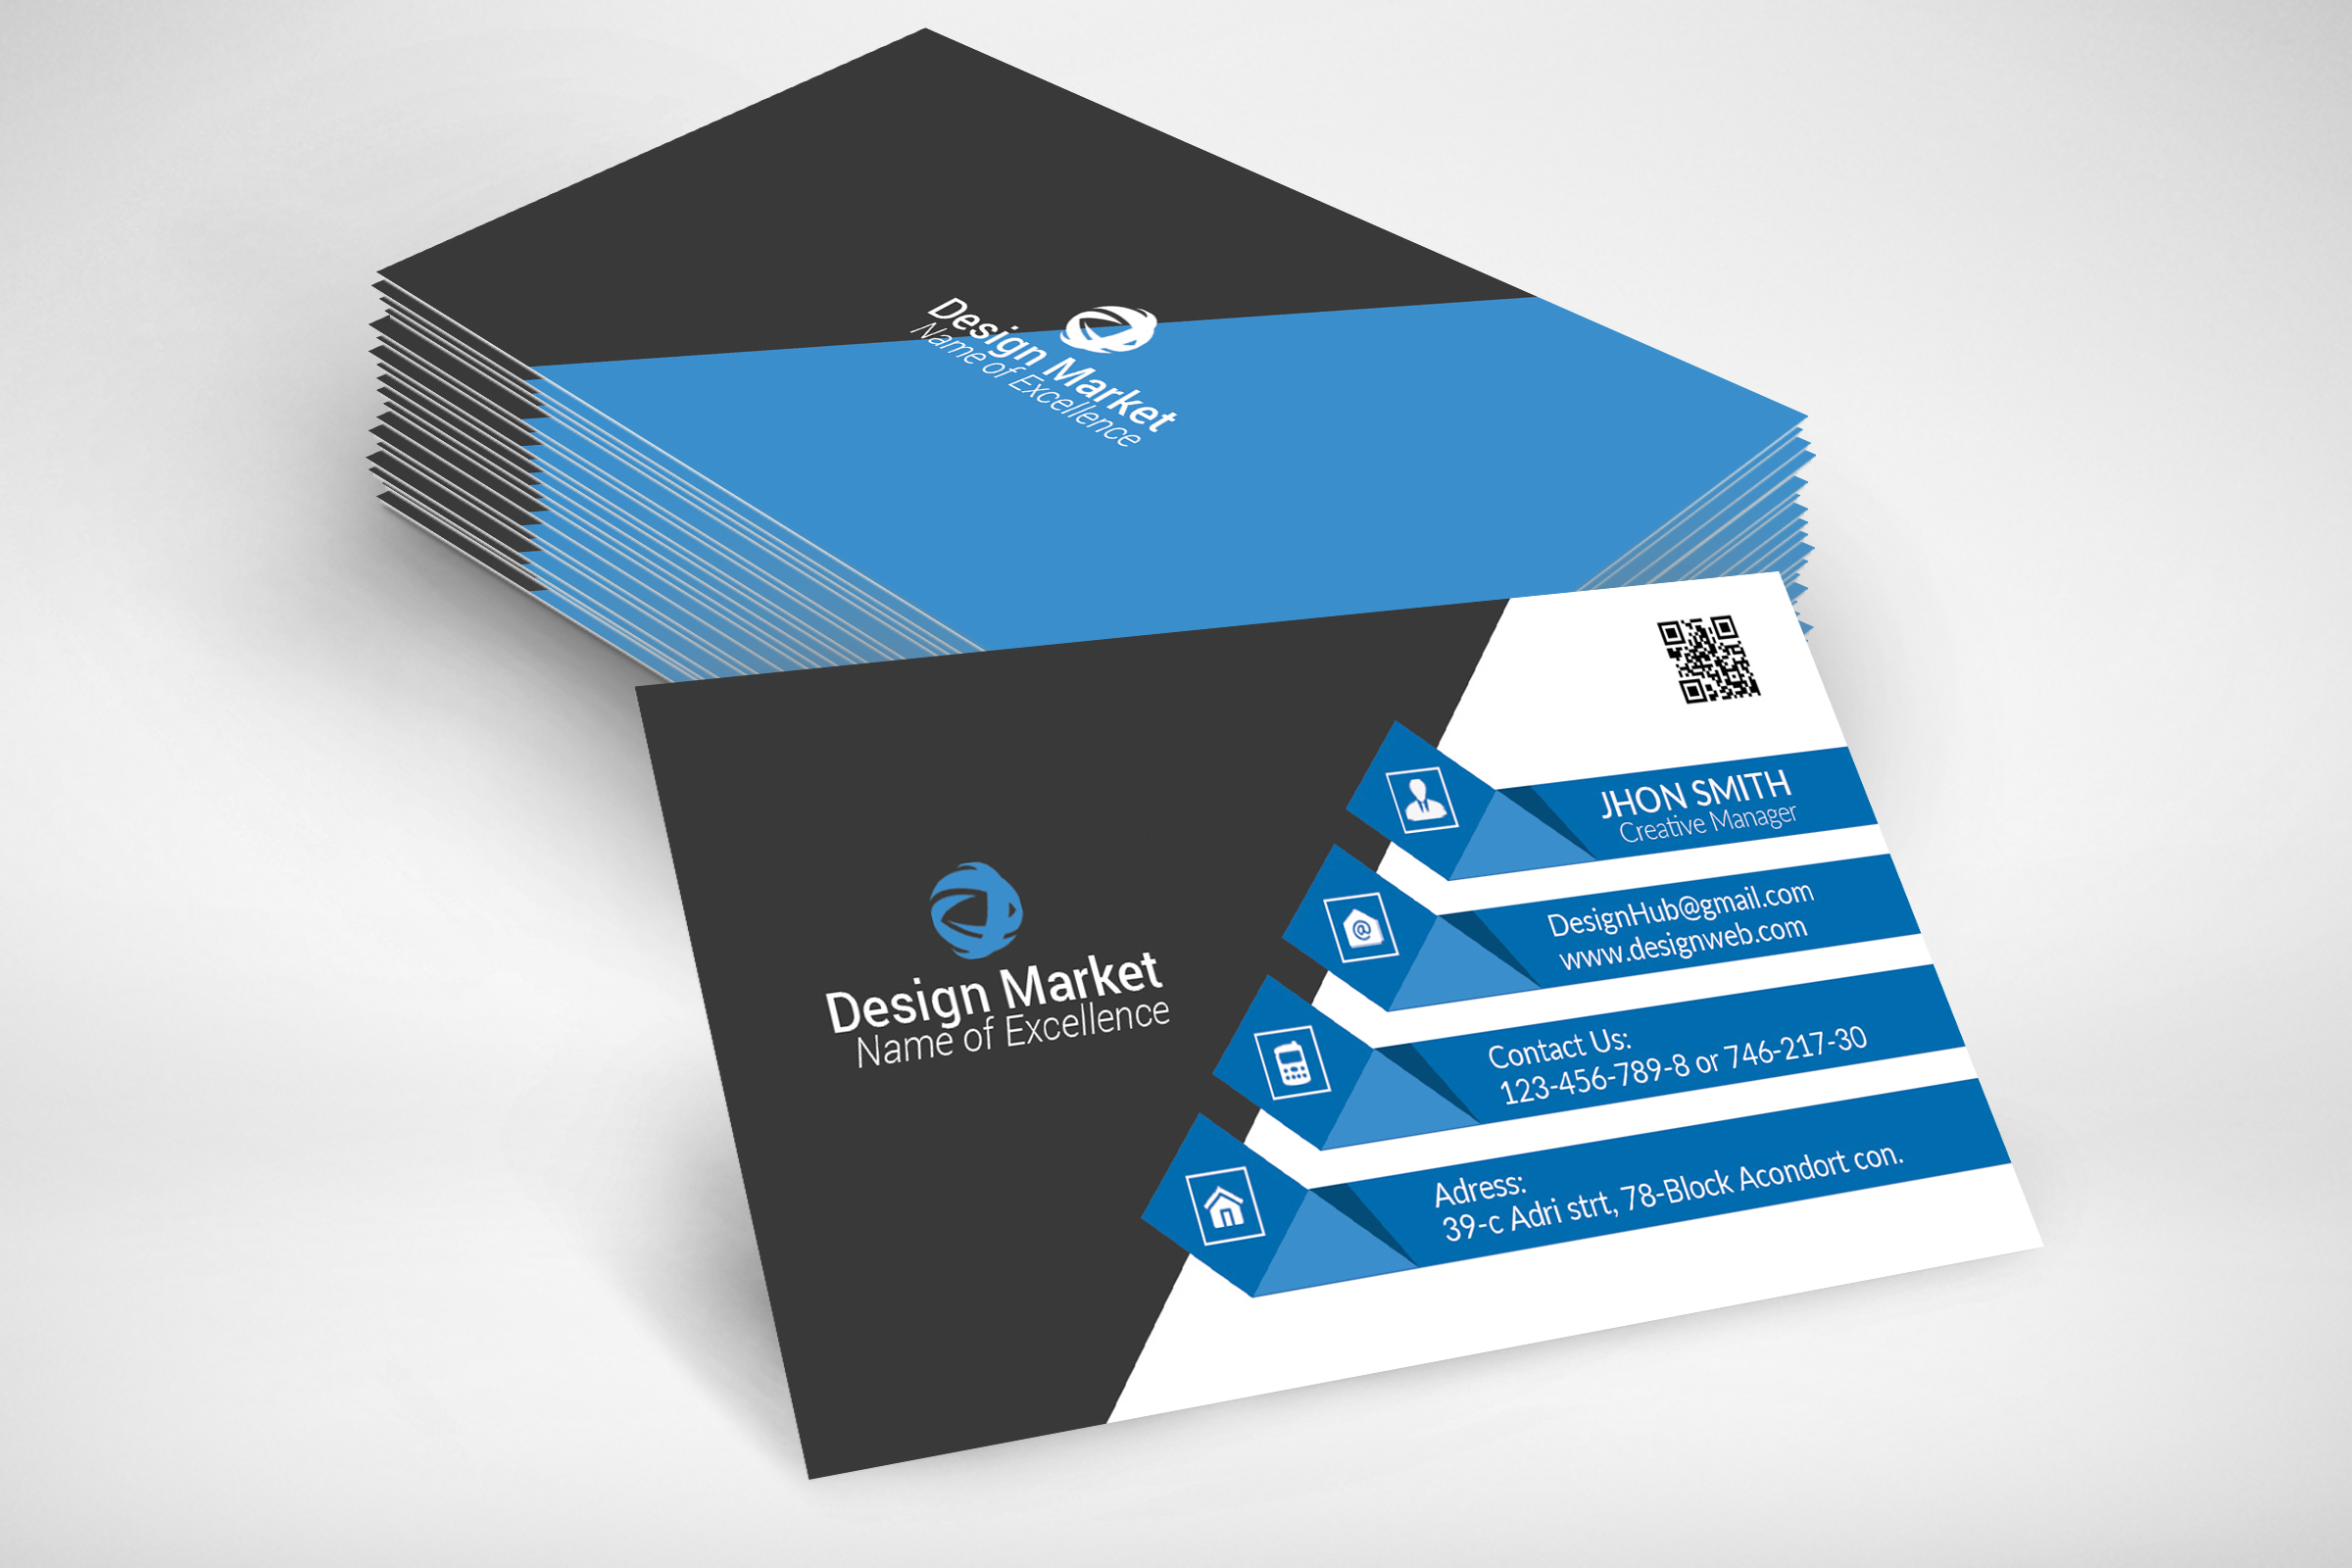 Business Cards Template example image 4